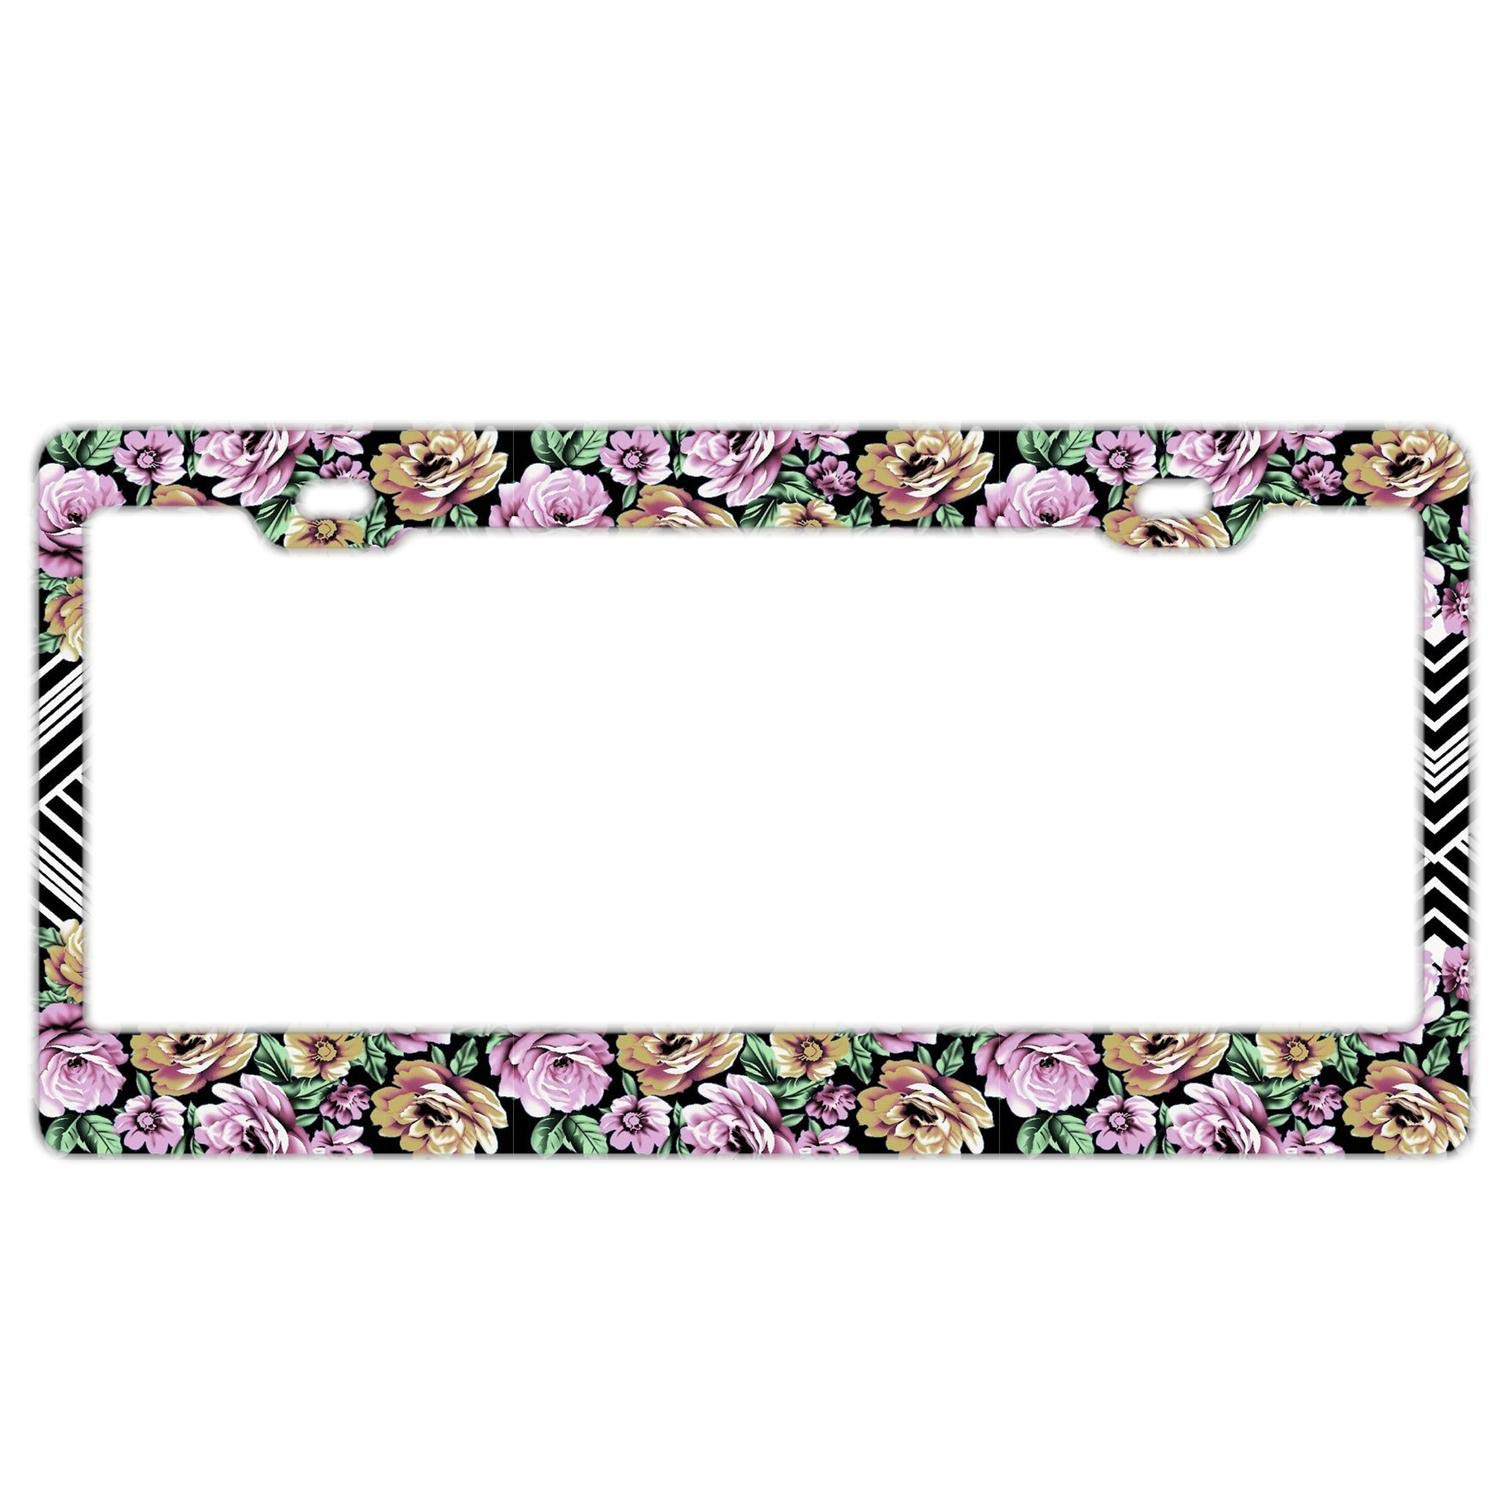 Pink And Blue Art Flowers Auto Car License Plate Frame Tag Holder 4 Hole